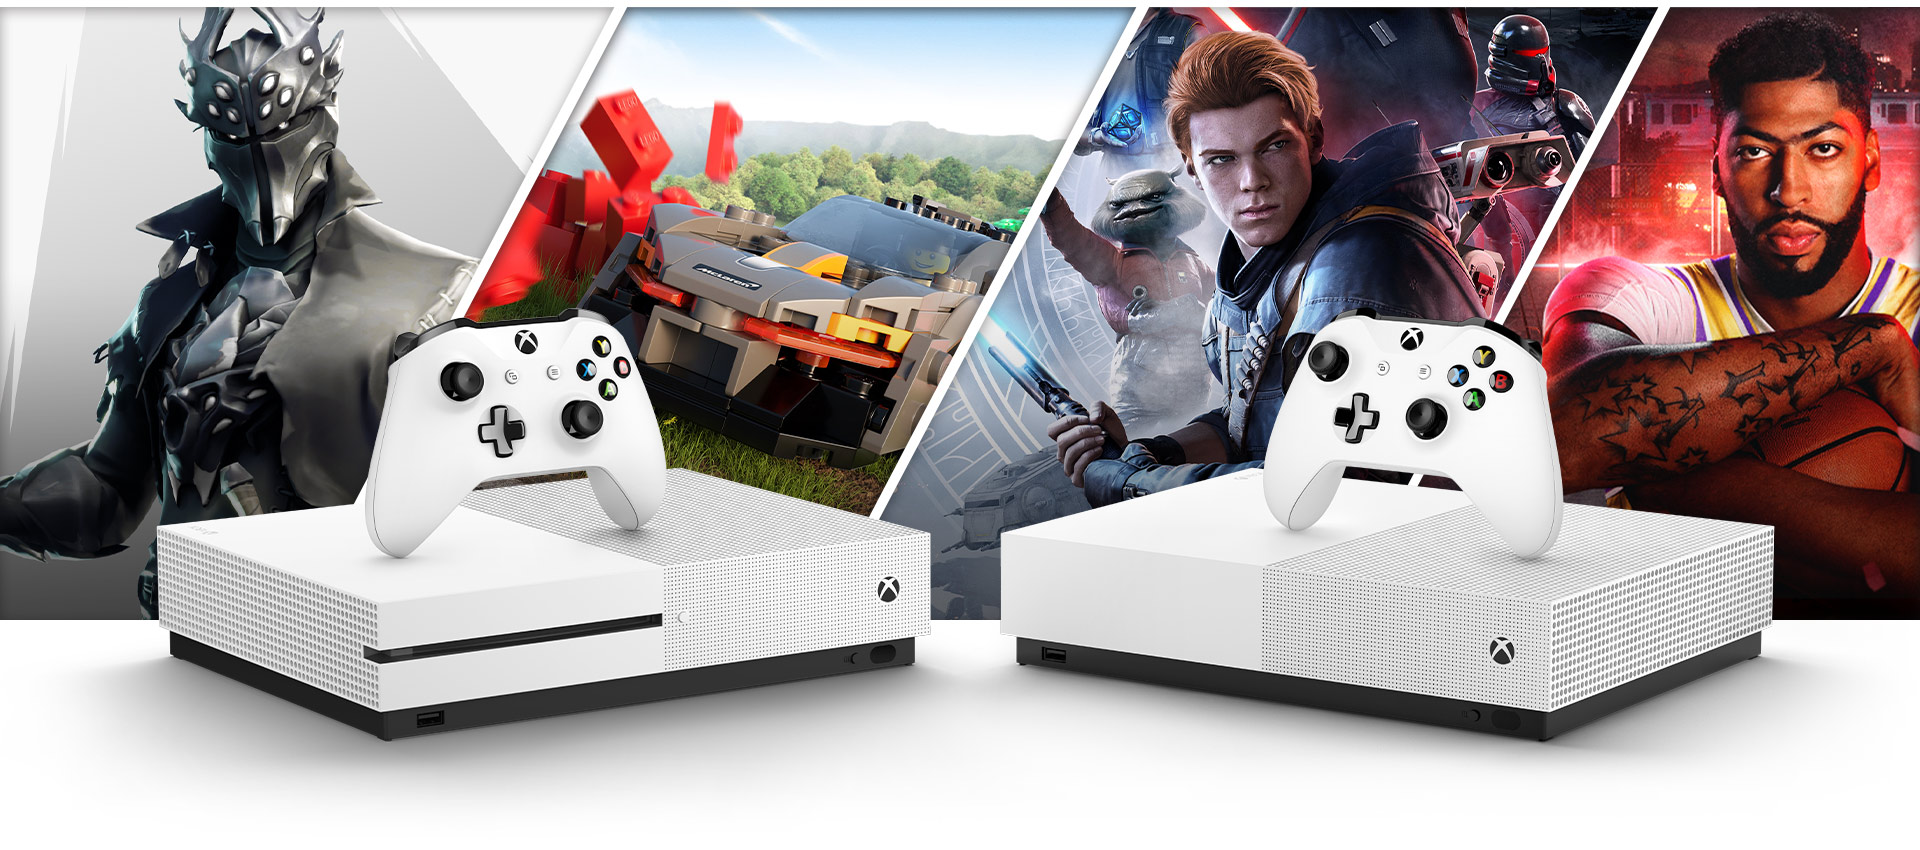 Fortnite、Forza Horizon 4、Star Wars Jedi Fallen Order 和 NBA 2K20 圖片在 Xbox One S 和 Xbox One S All Digital Edition 後面